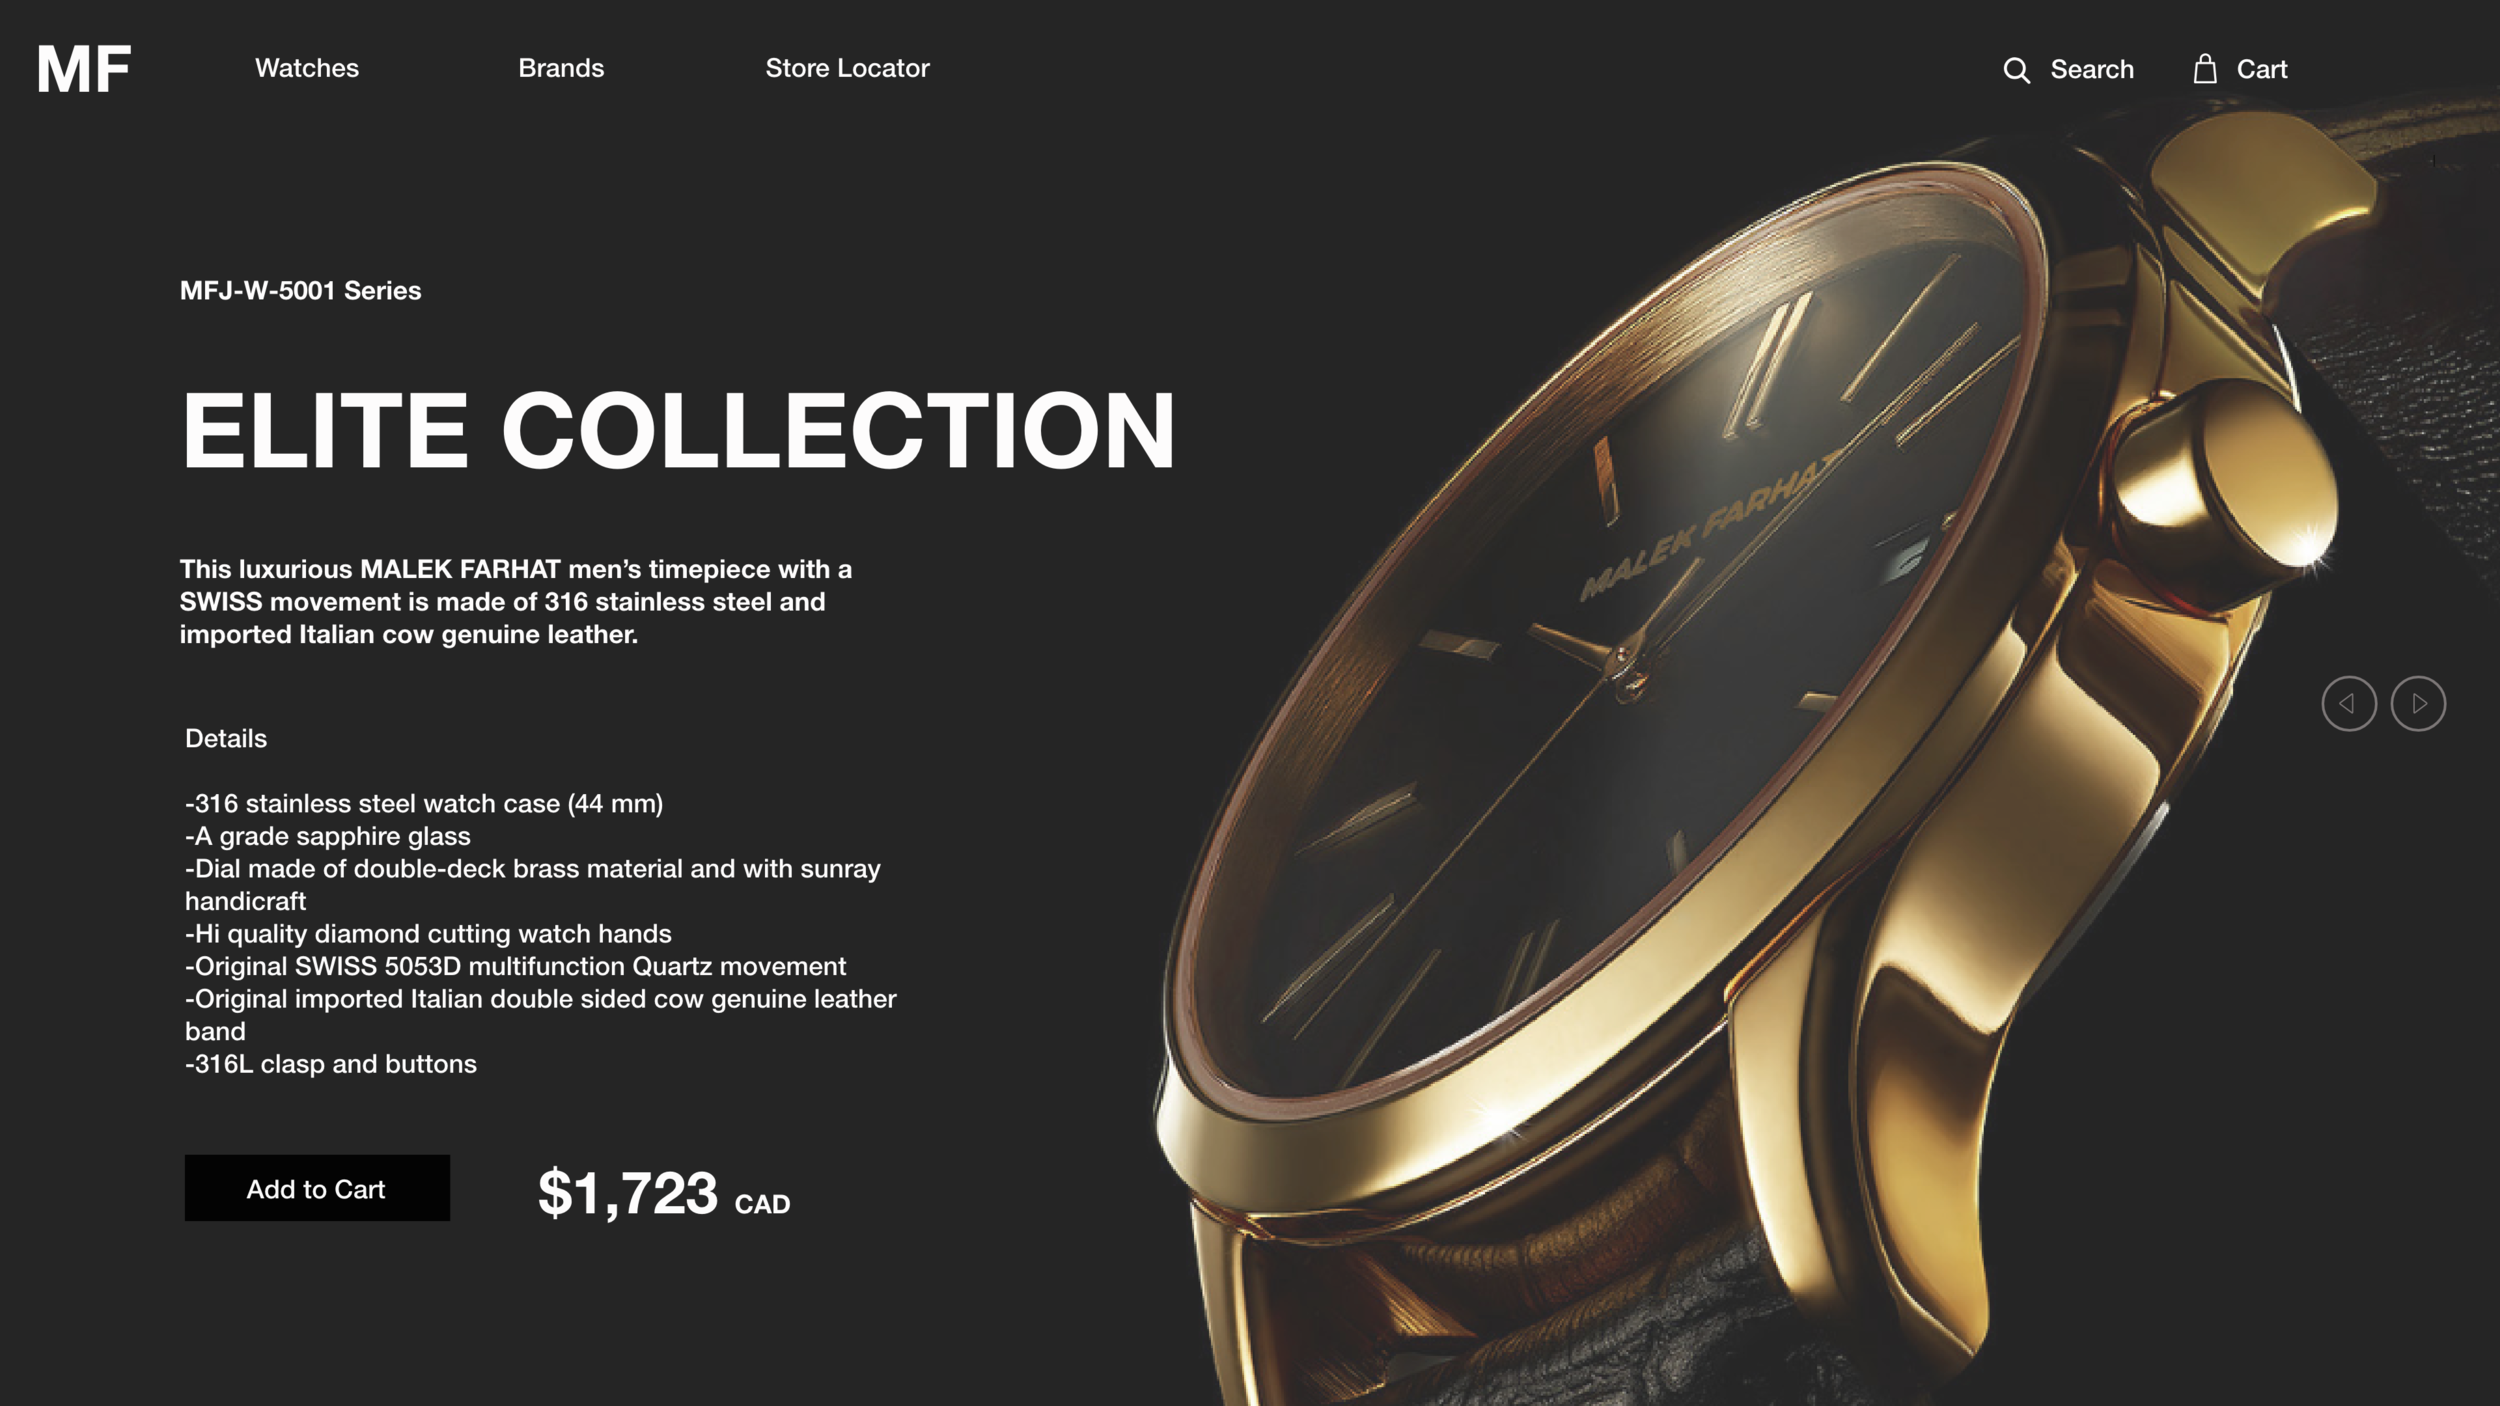 Product Webpage Design for Luxury Watch 3